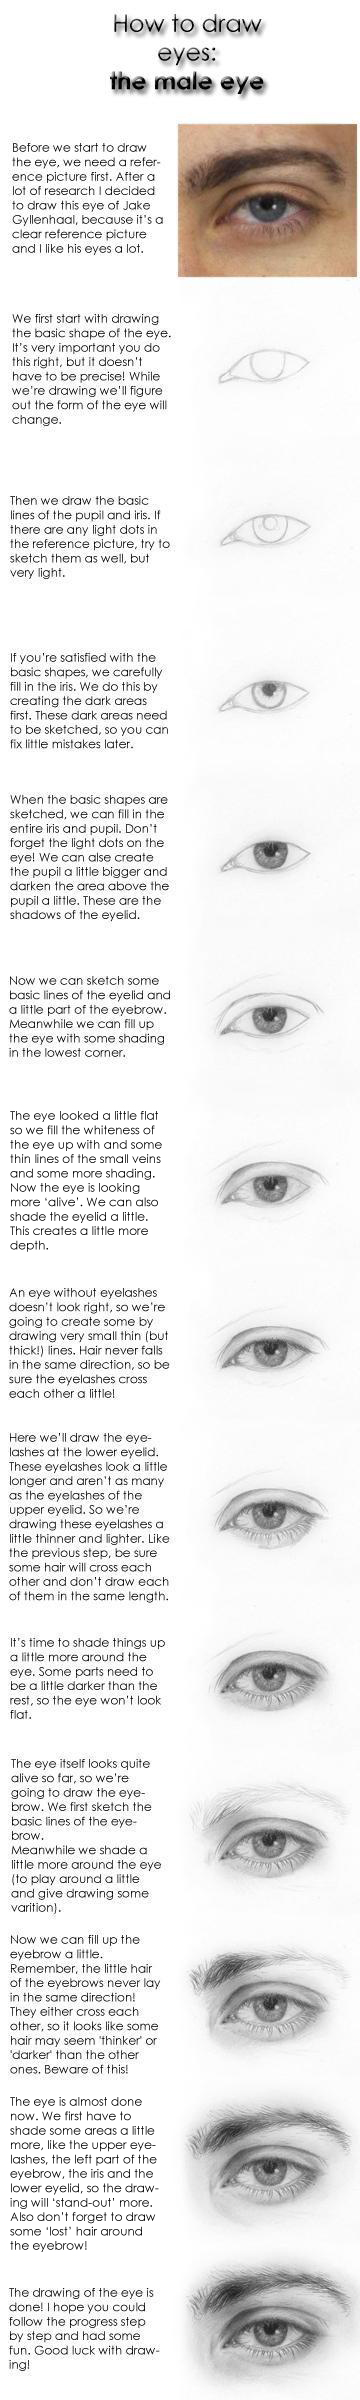 Tutorial: how to draw eyes